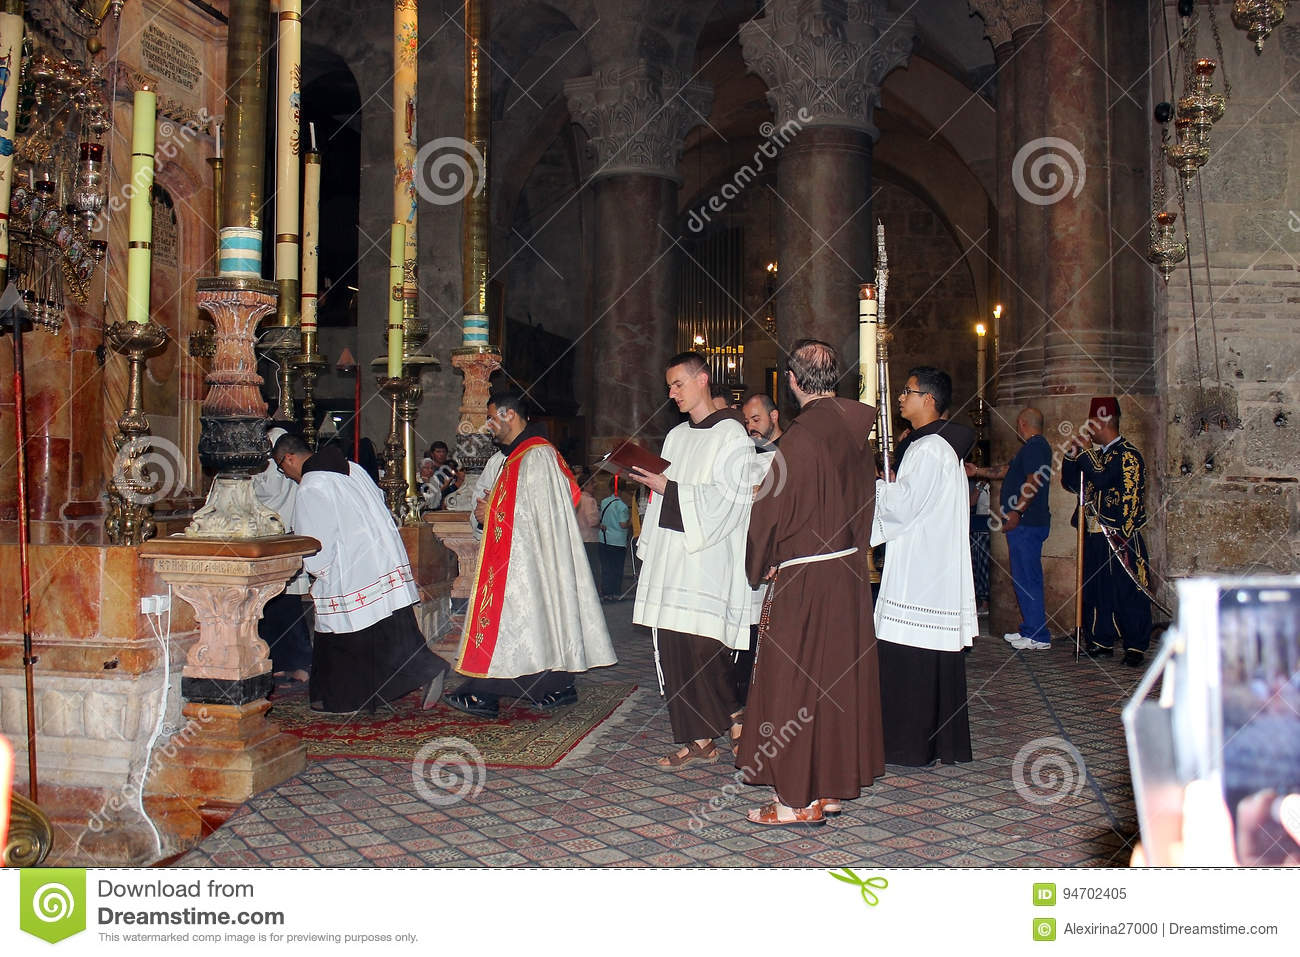 Priests at the entrance to the aedicula of the Holy Sepulchre, Jerusalem